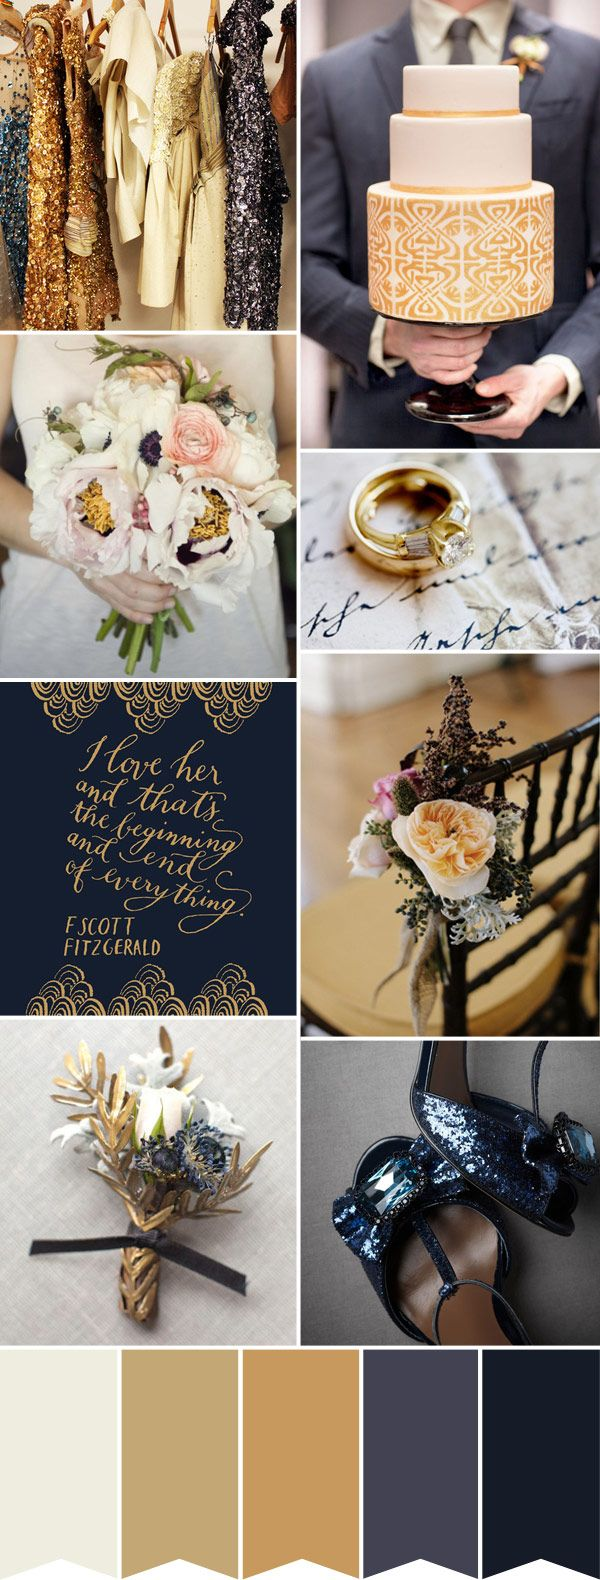 Wedding colour palette - various shades of Dark Blue and Gold: